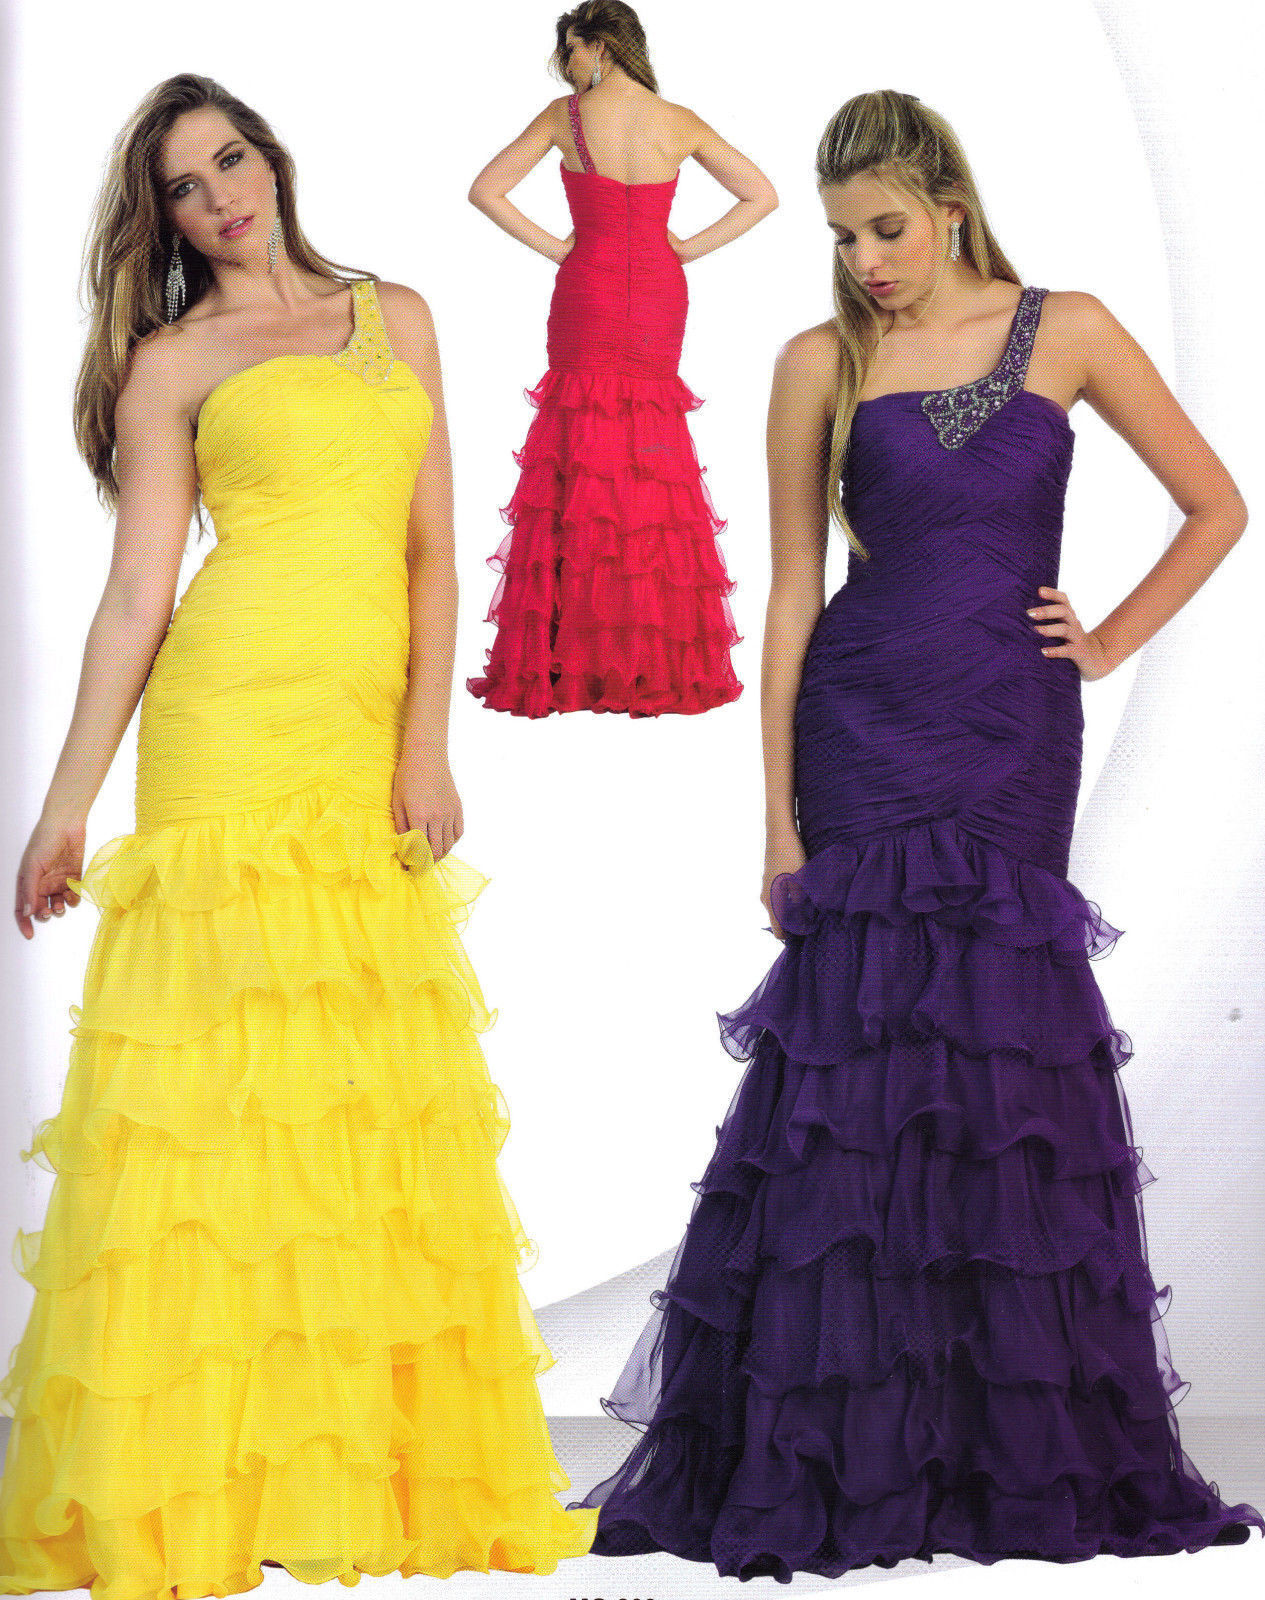 Gelb PAGEANT DANCE PARTY LONG PROM FORMAL OCCASION DRESS BALL GOWN  SZ  10